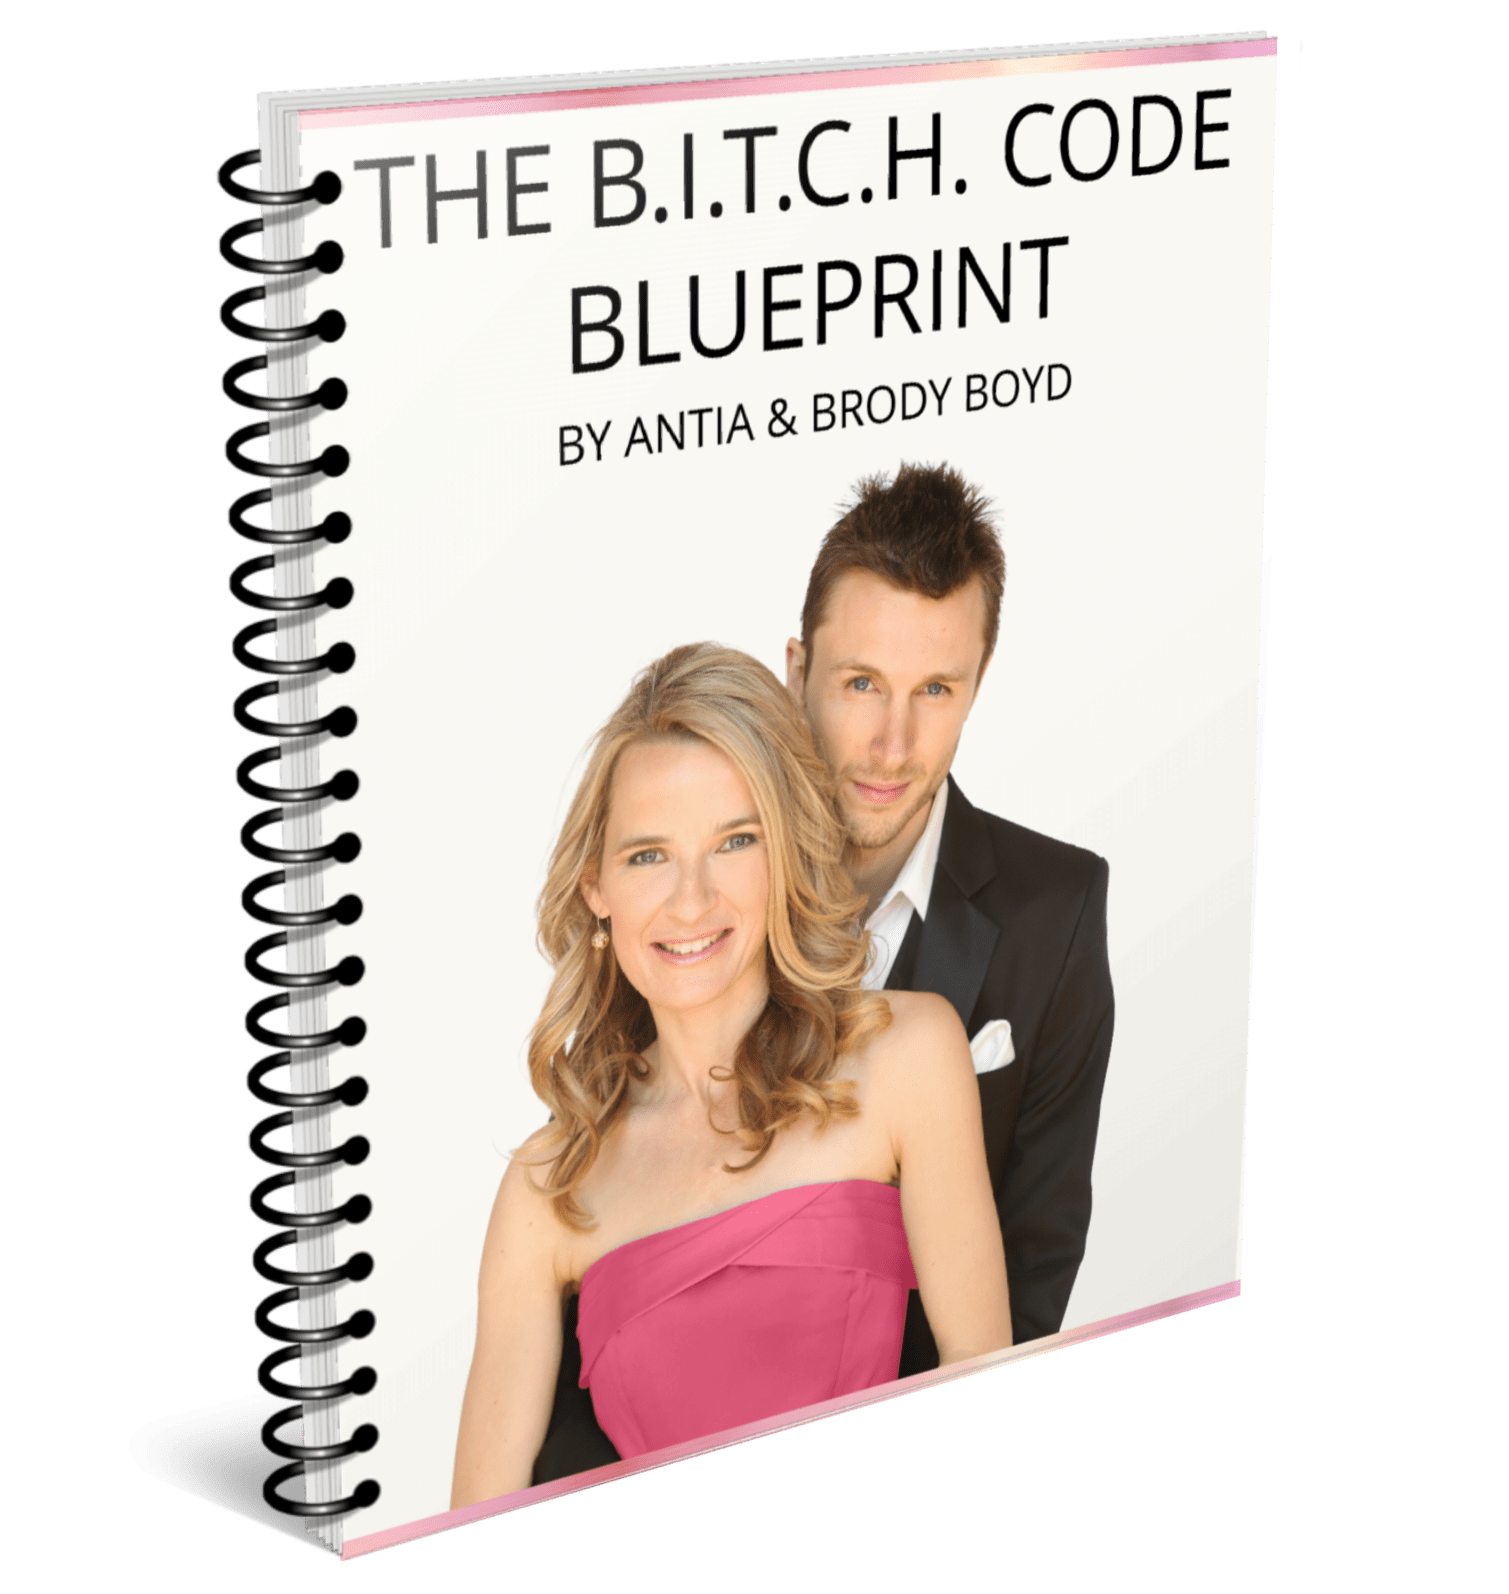 sthst - The Bitch Code Free Gift Opt-In | Cloned at: 2020-04-10 20:42:29